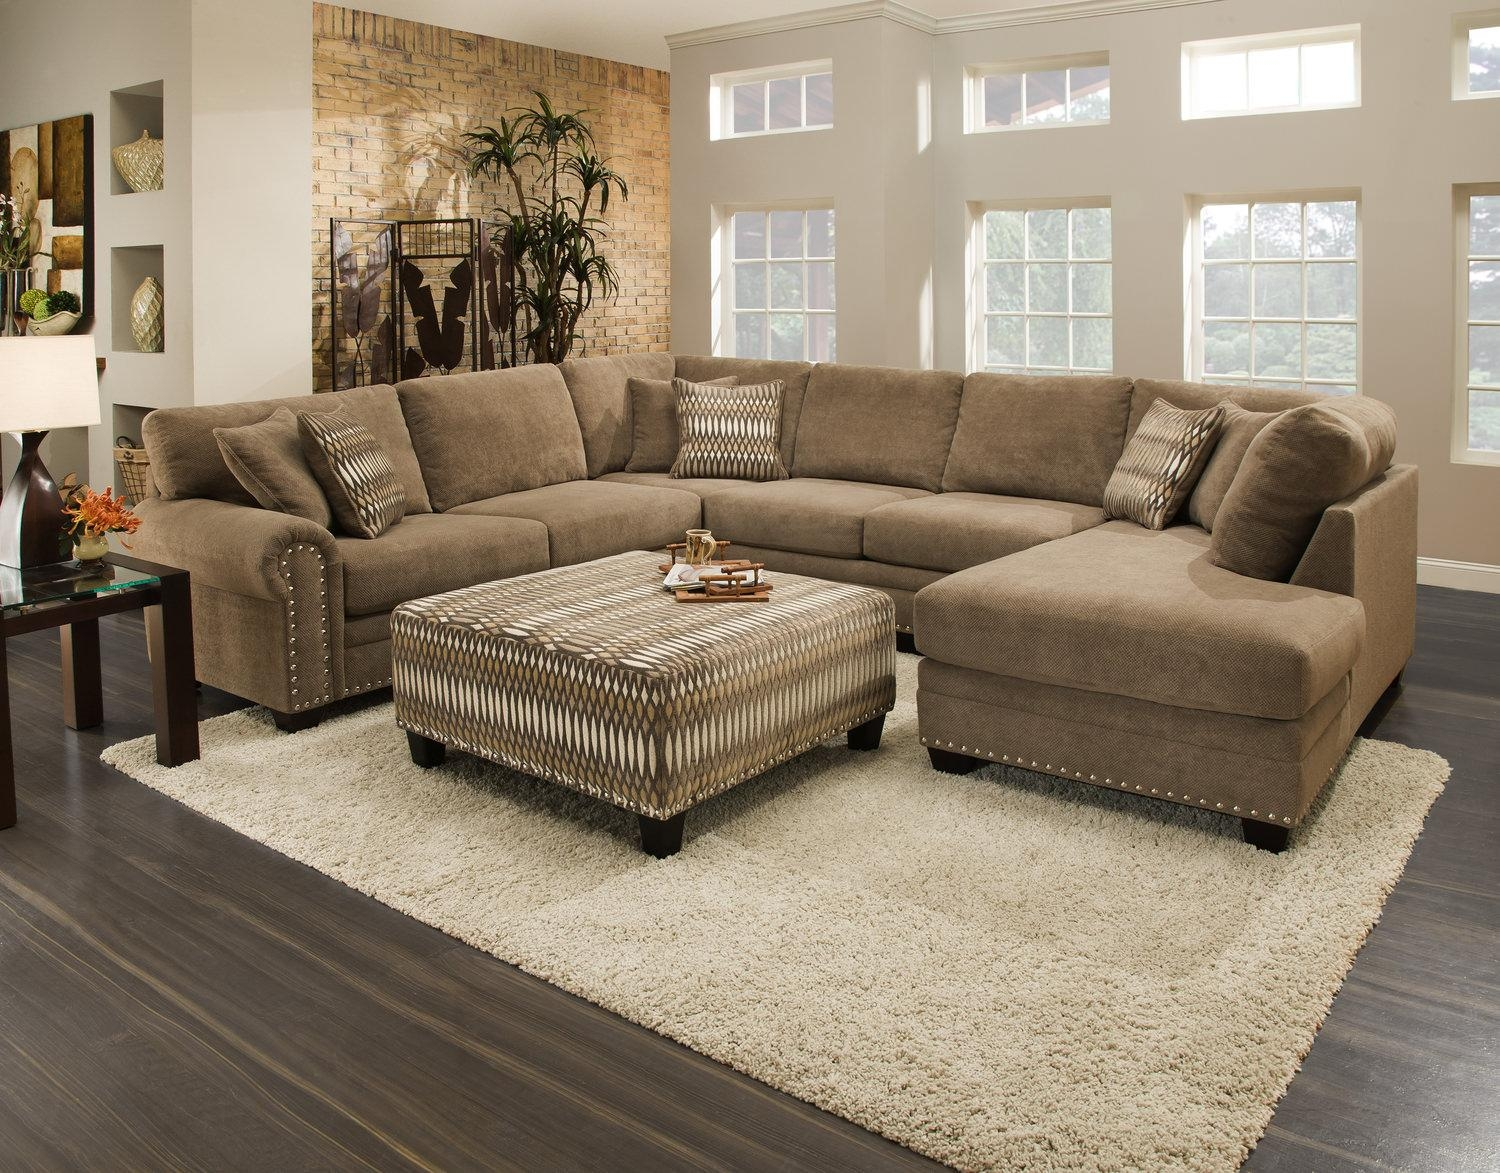 Sectional Sofas – Living Room Seating – Hom Furniture Throughout Wide Seat Sectional Sofas (Image 16 of 20)